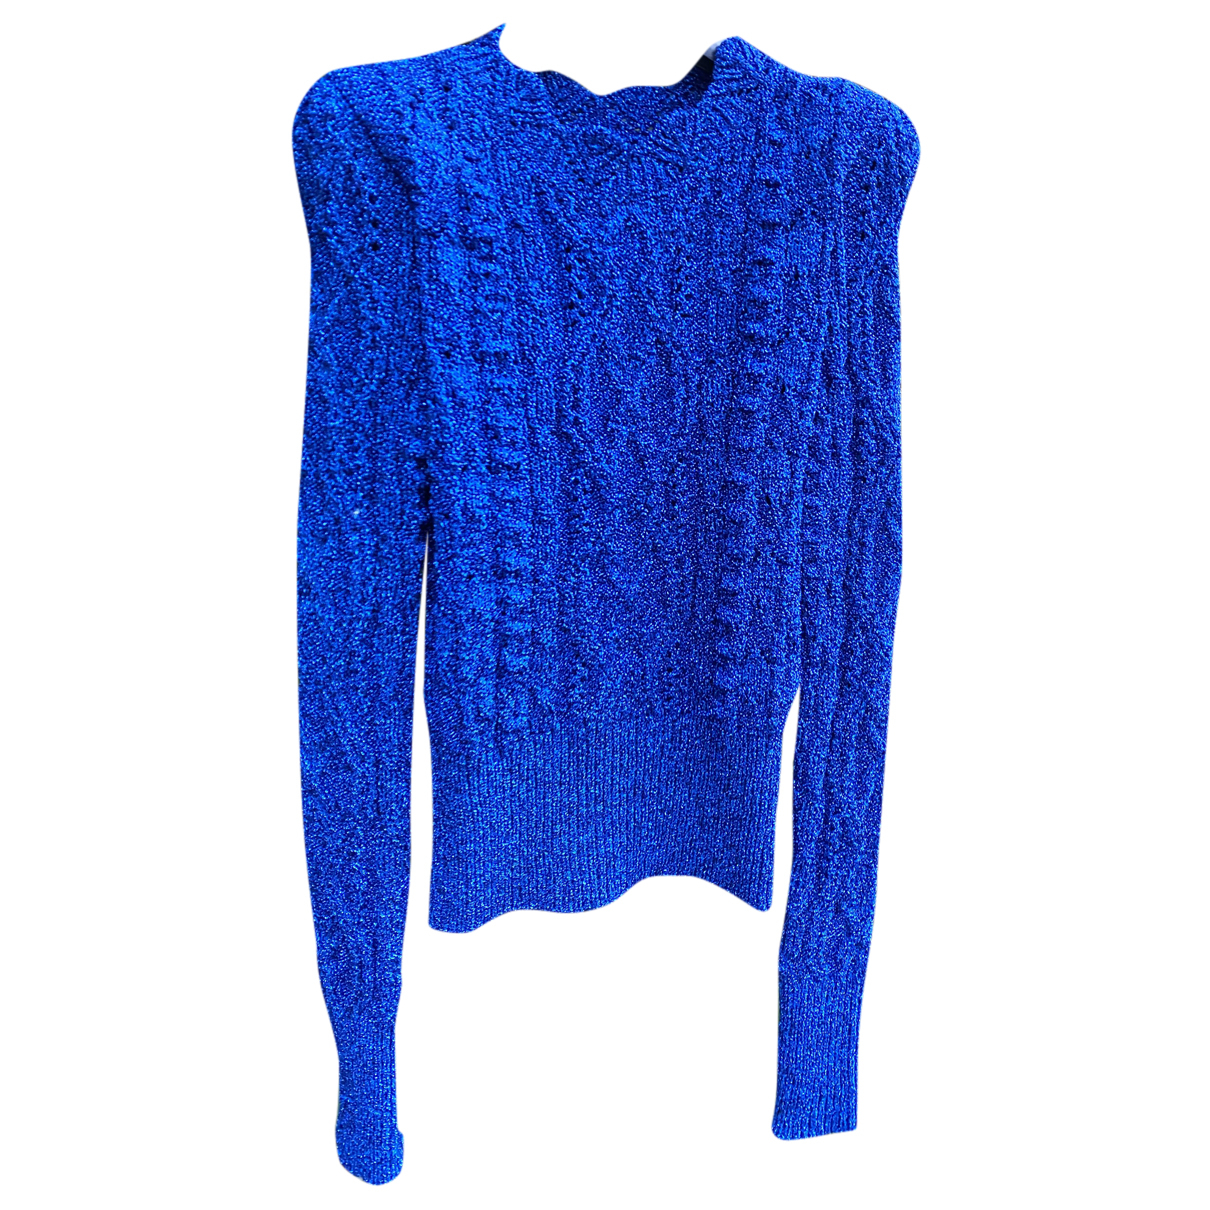 Isabel Marant N Blue Knitwear for Women 40 FR